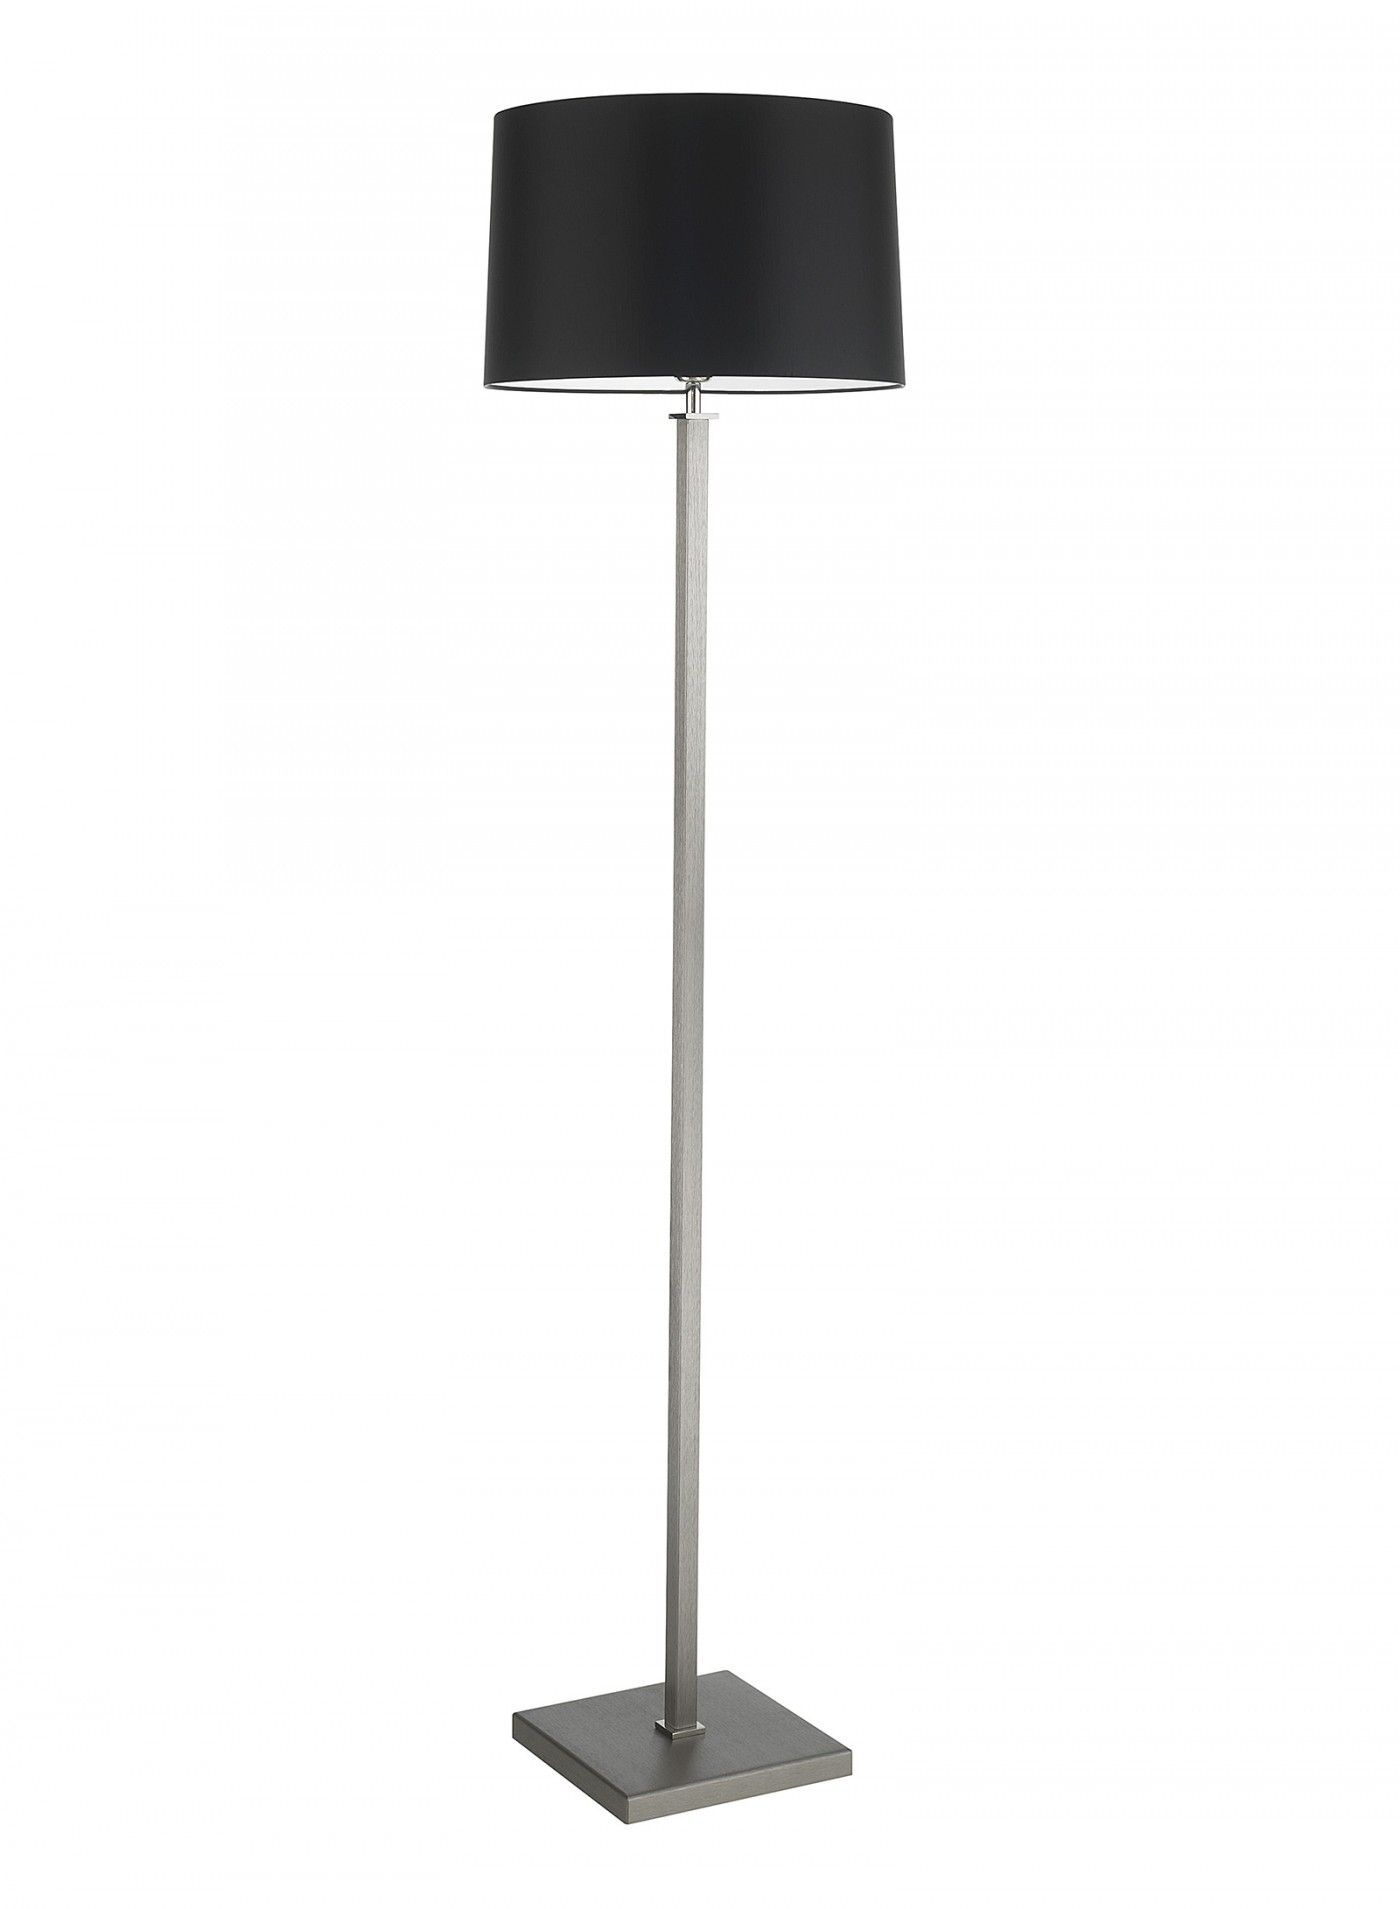 Toronto Floor Lamp - Heathfield & Co | P-CS-6th-concept | Pinterest ...